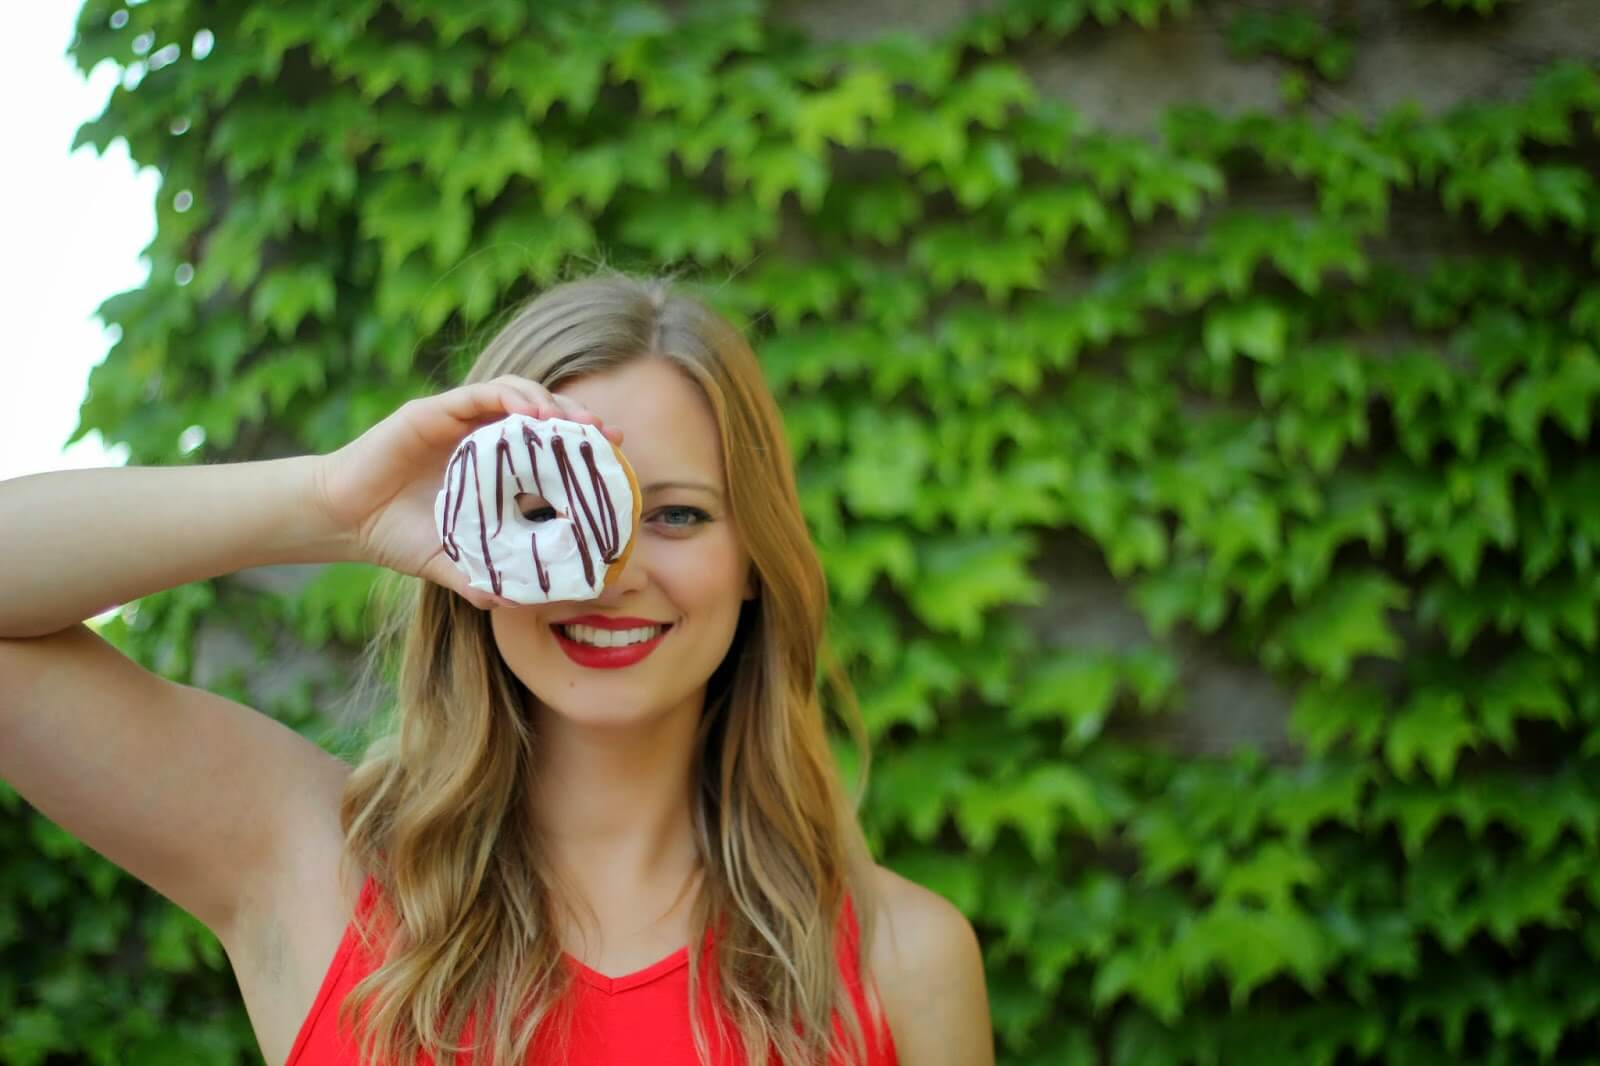 woman holding donut over eye